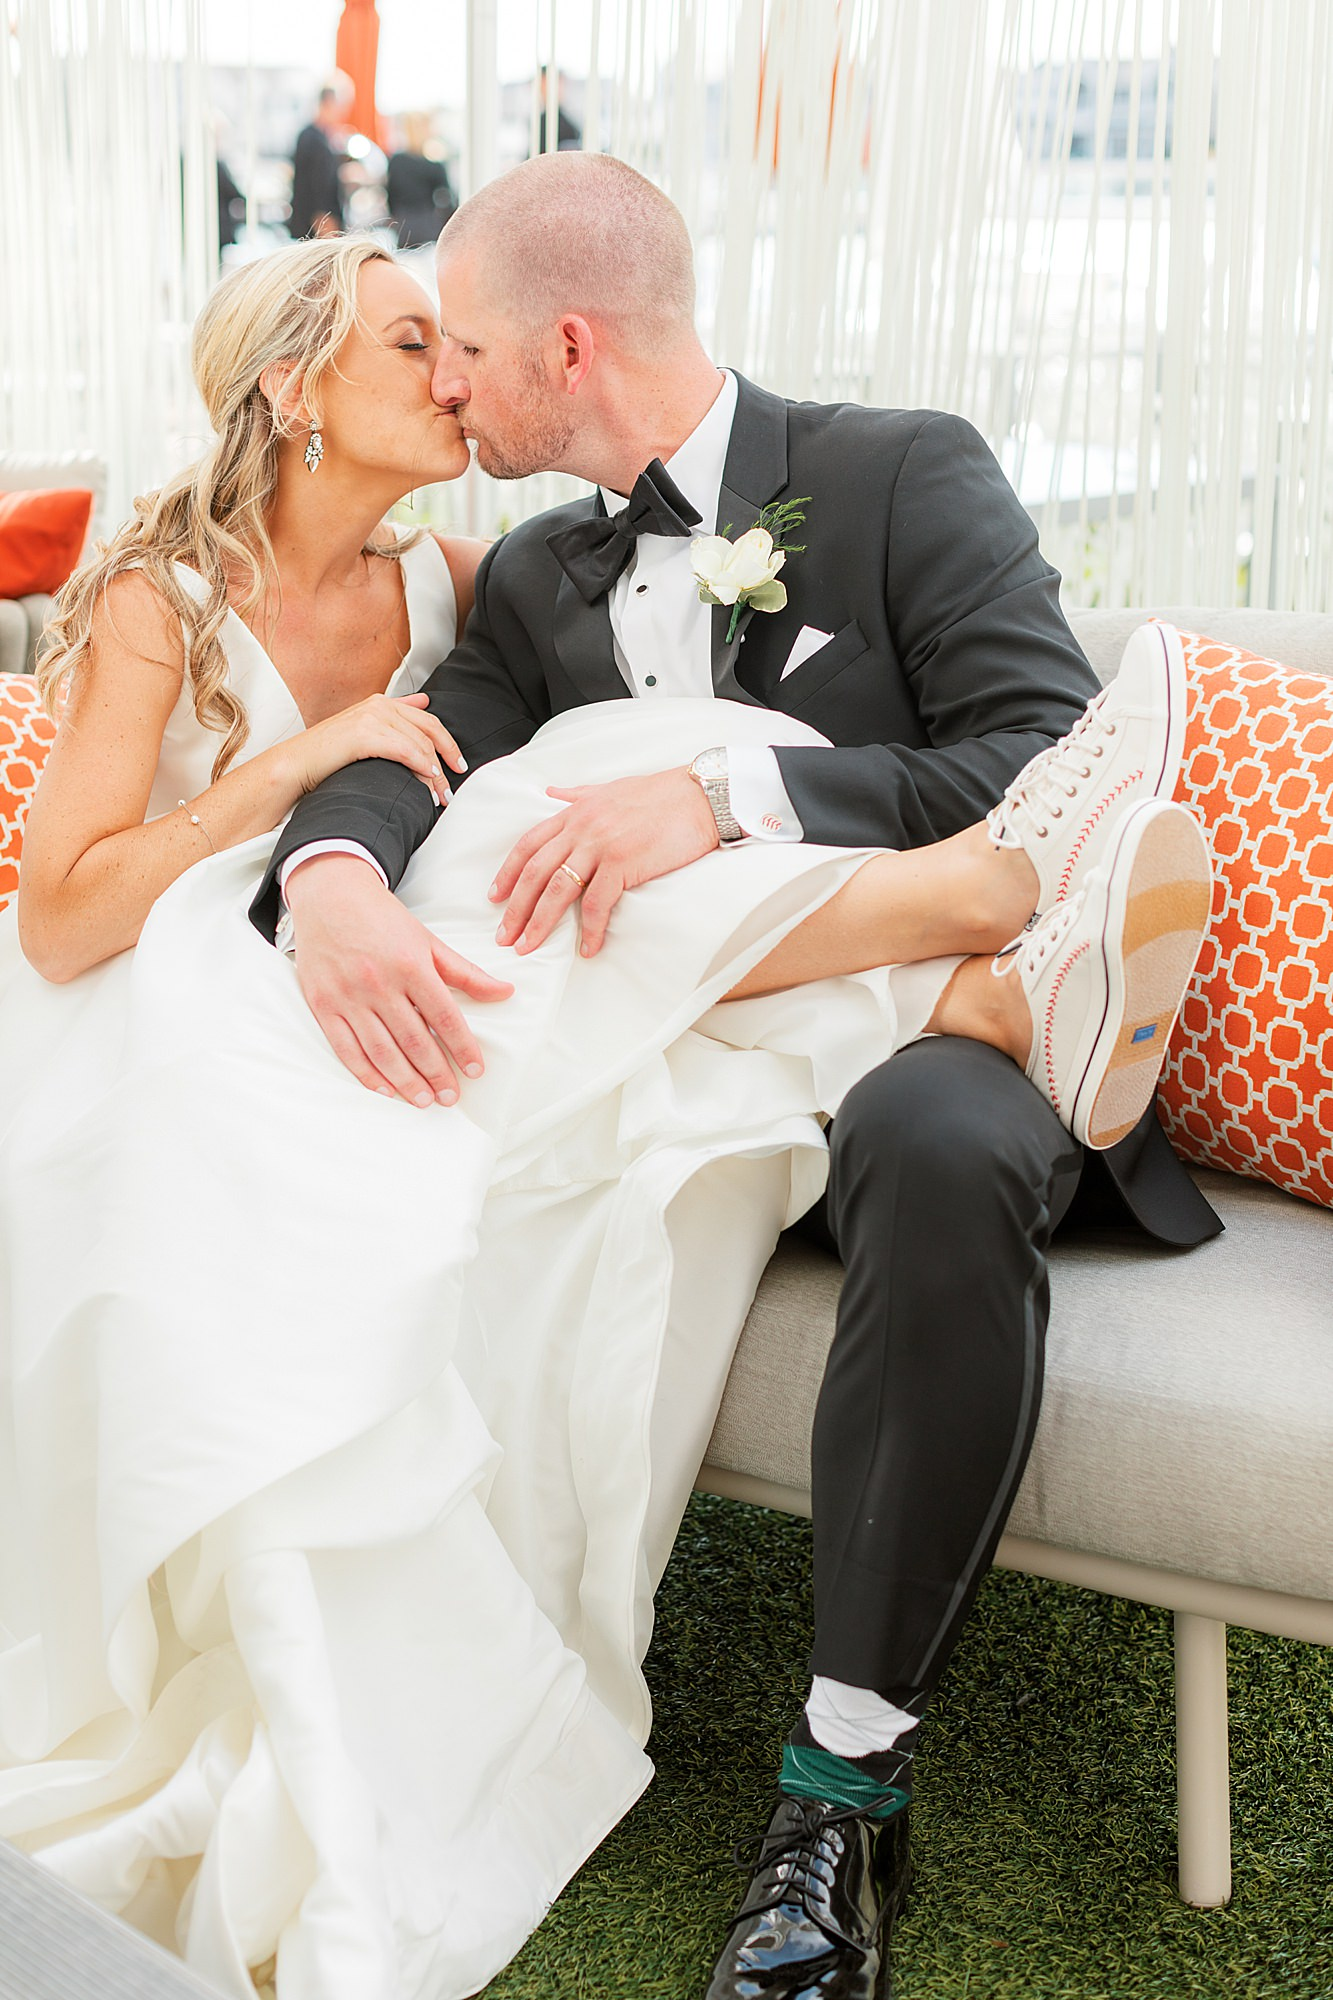 Natural and Vibrant Wedding Photography at the Reeds in Stone Harbor NJ by Magdalena Studios 0048